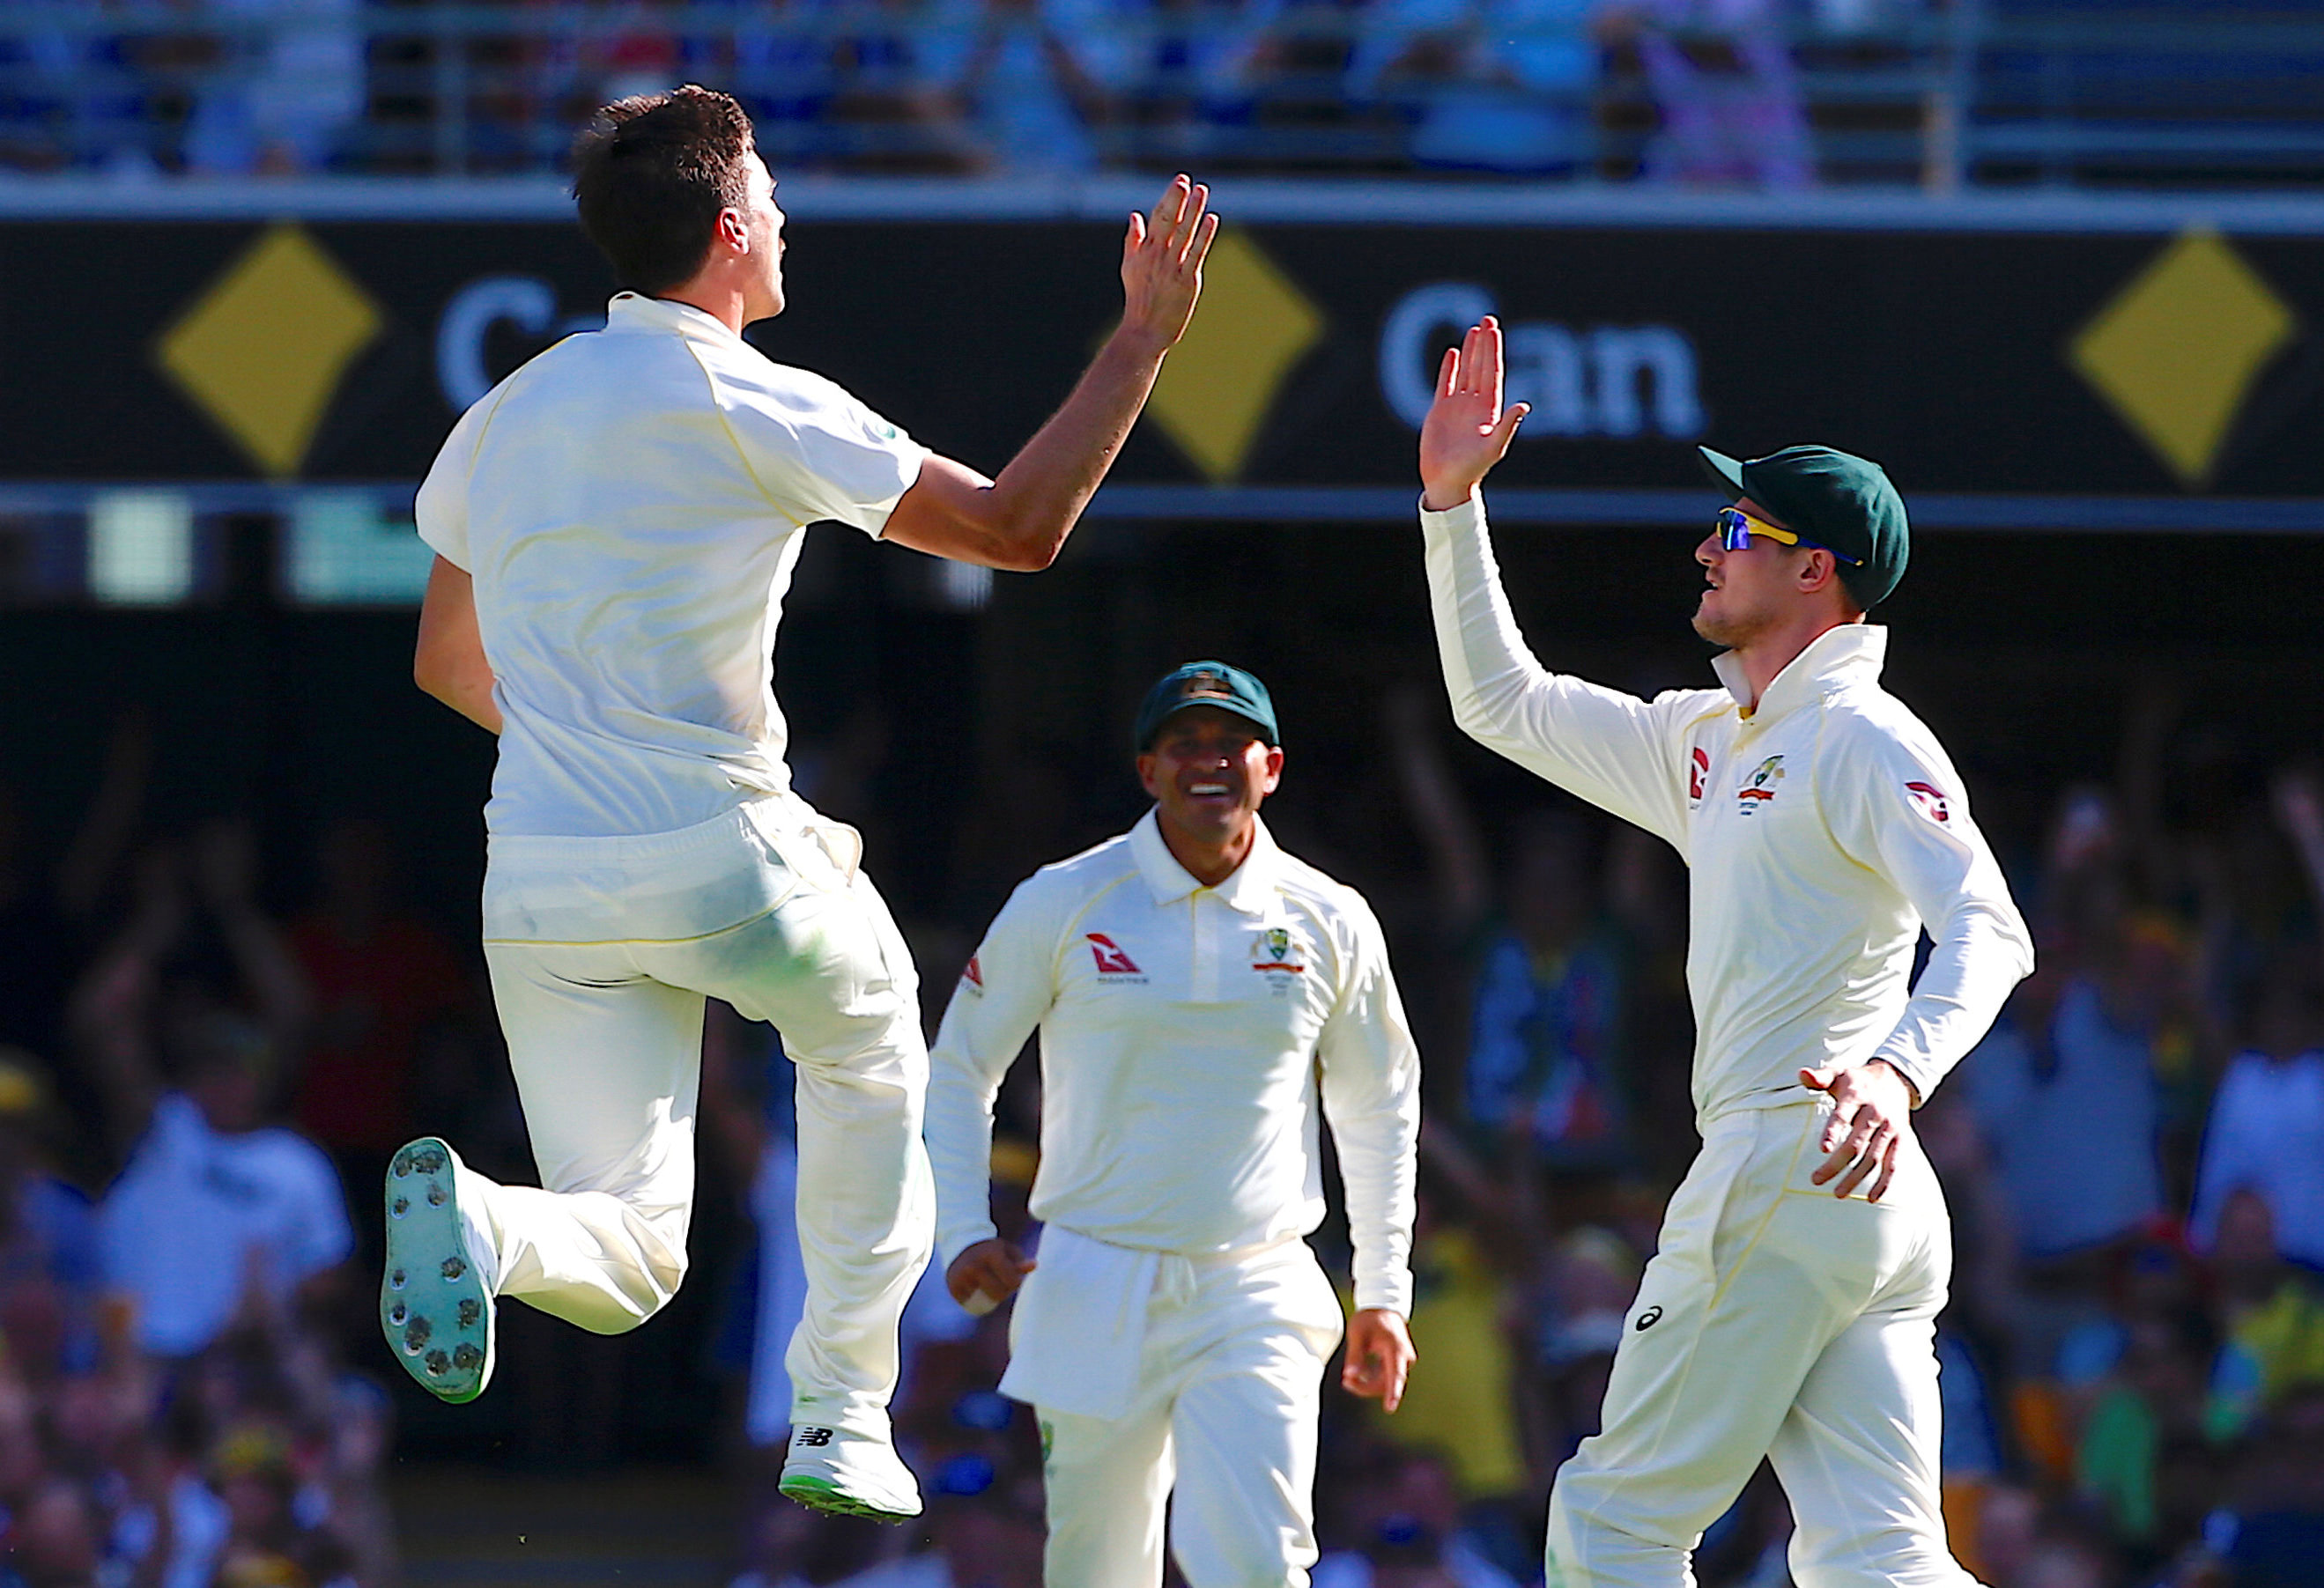 Live blog: Ashes 2017 — First test between Australia and England at Gabba, Brisbane